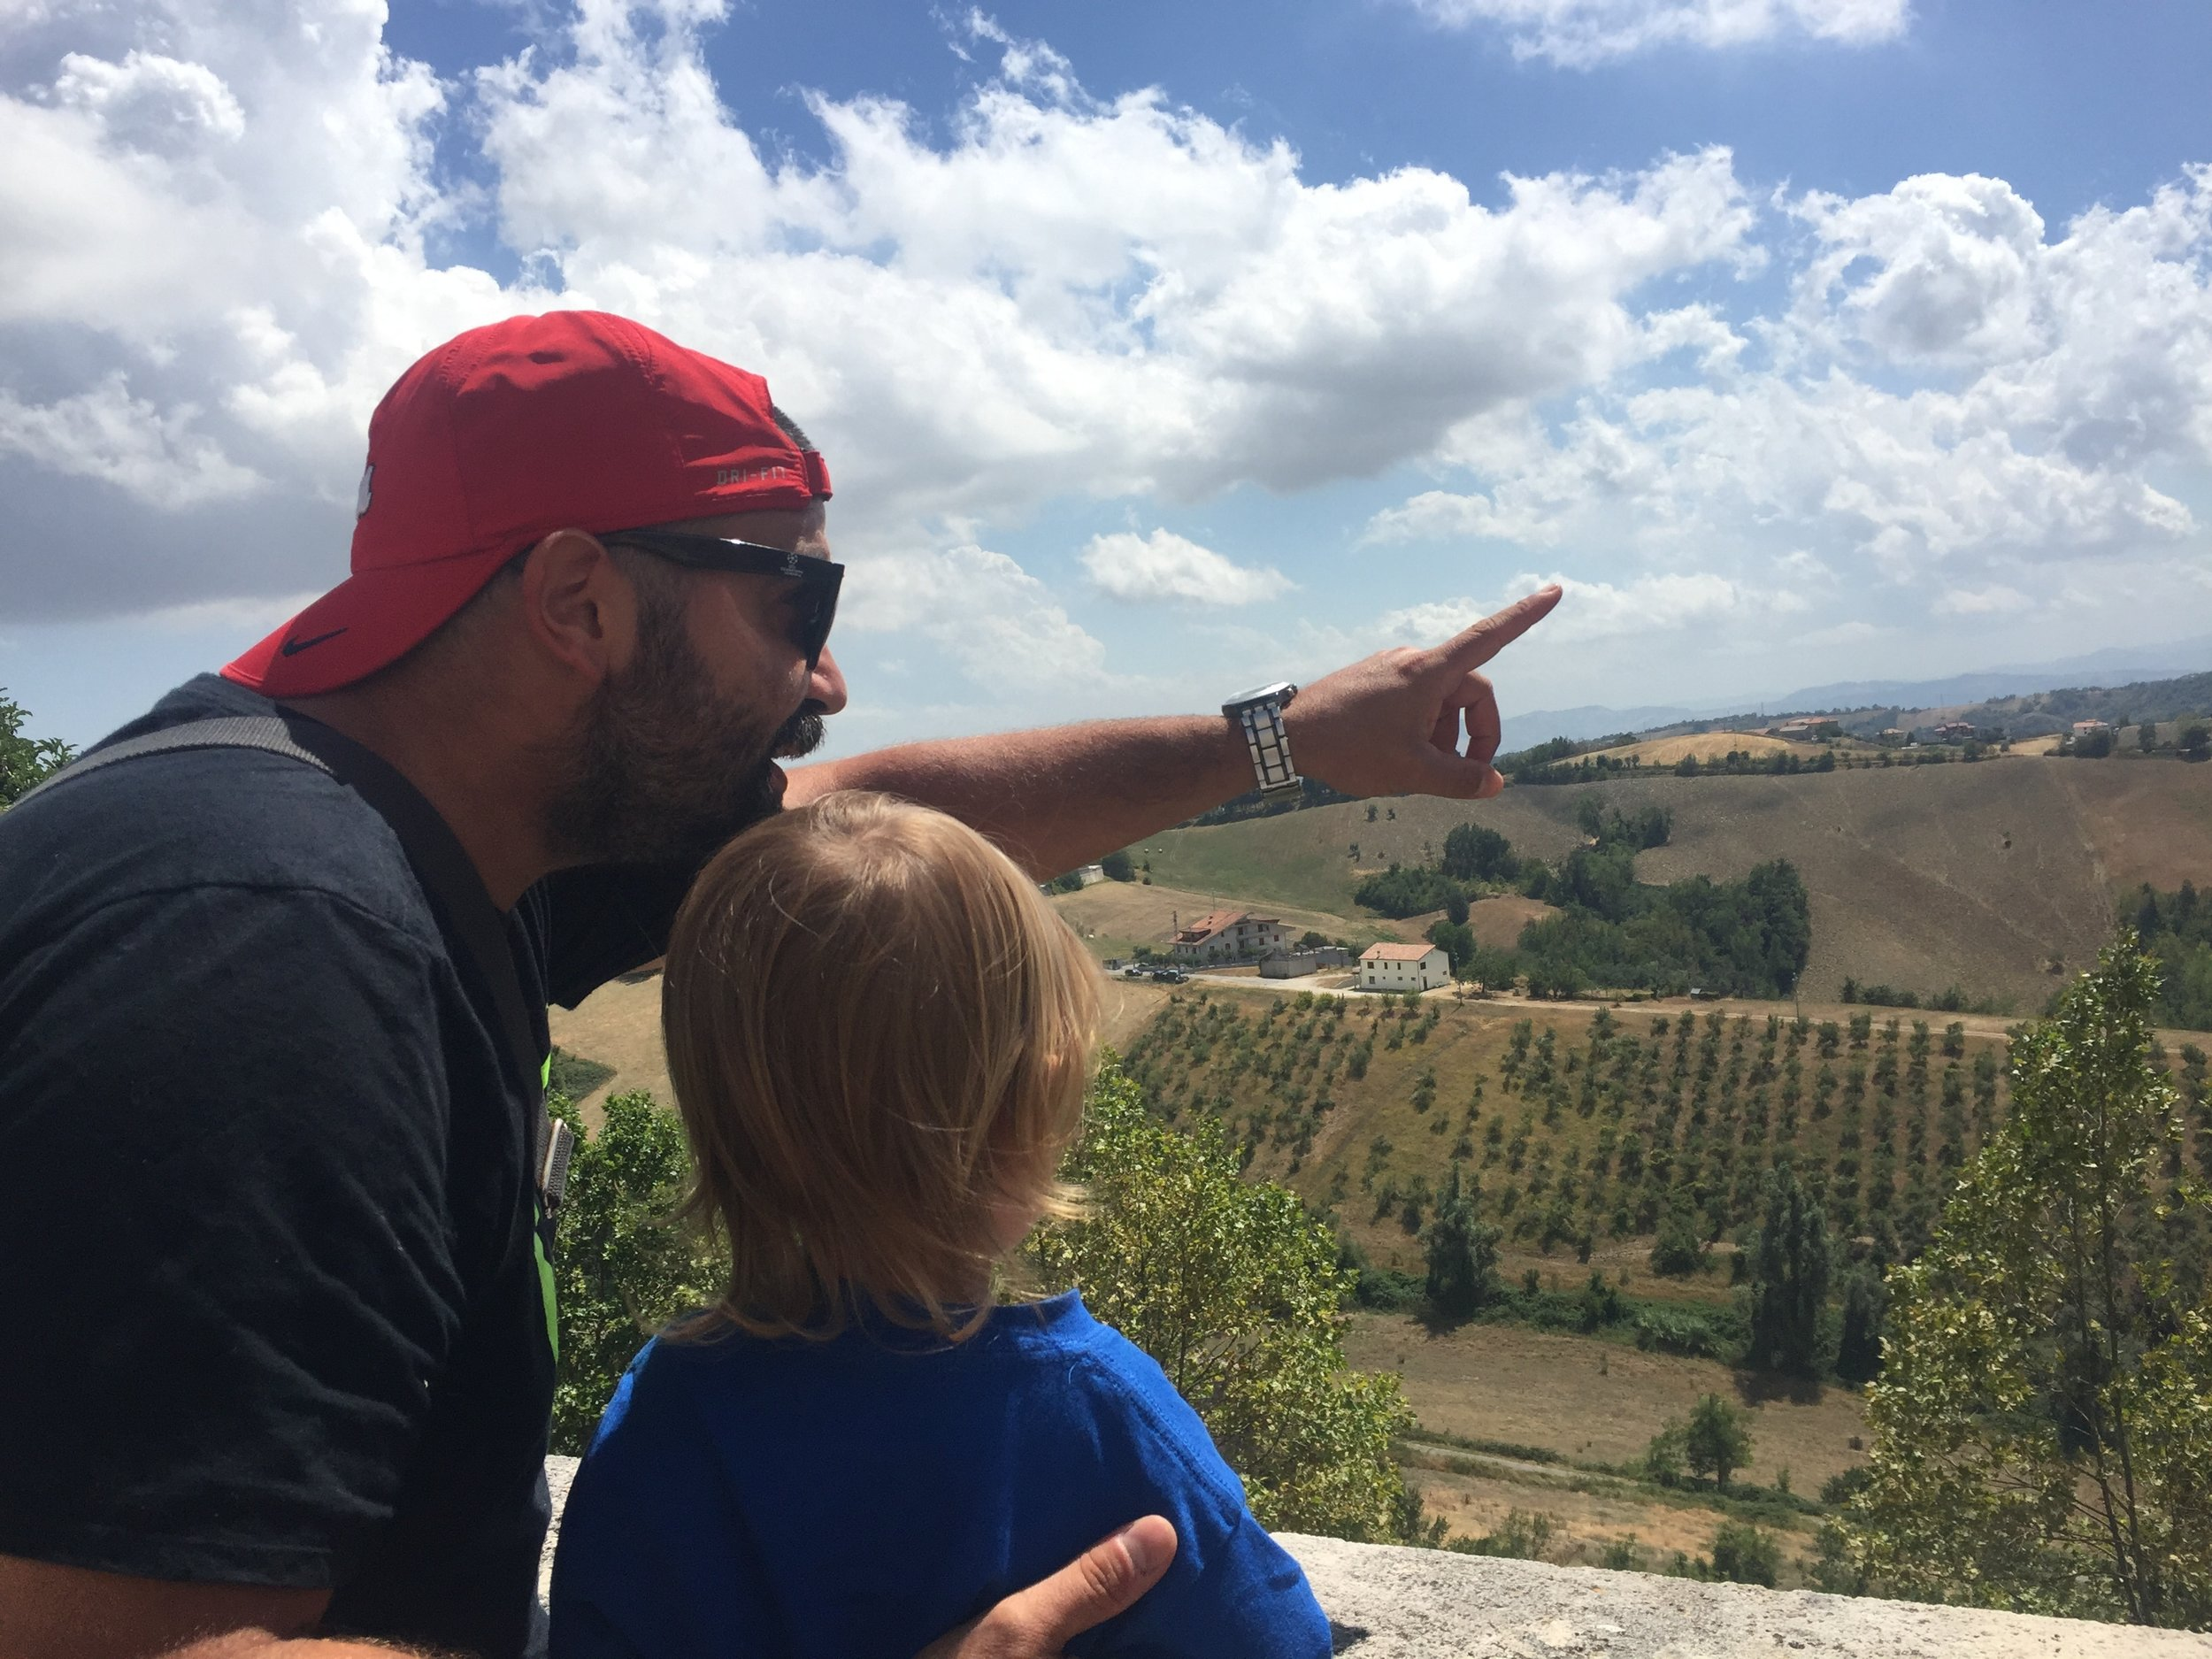 Where We Are - Our family of three moved from the United States to Italy in 2018. We love exploring, planning adventures and playing outside.